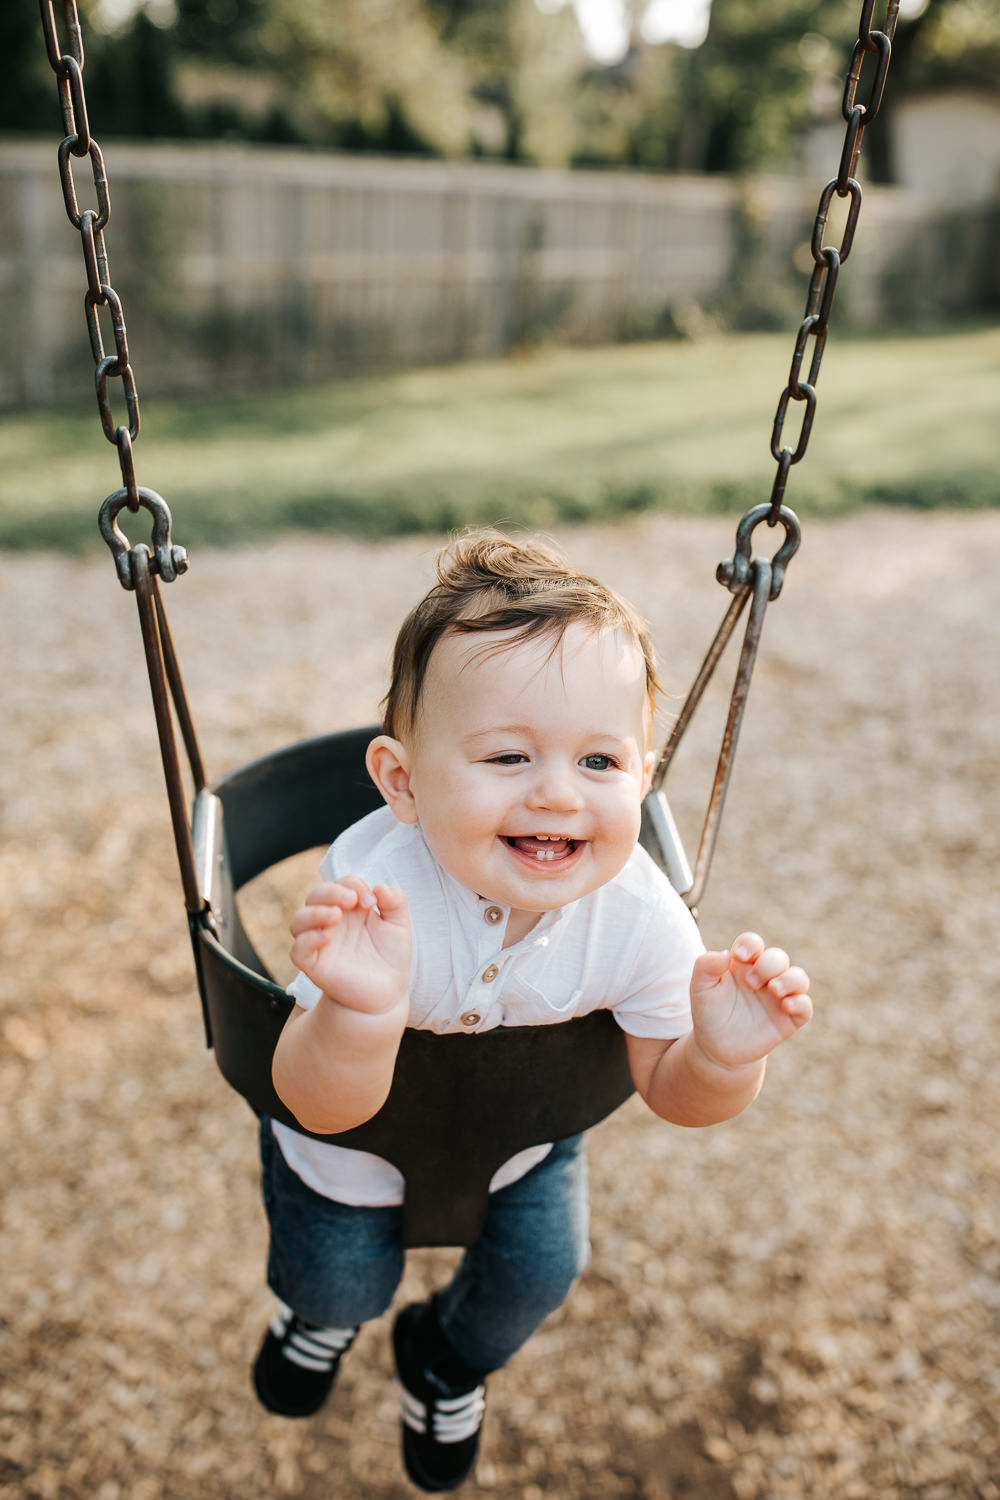 9 month old baby boy with dark brown hair wearing white t-shirt and jeans smiling and laughing with hands in air as he sits in swing at park -Markham Golden Hour Photography